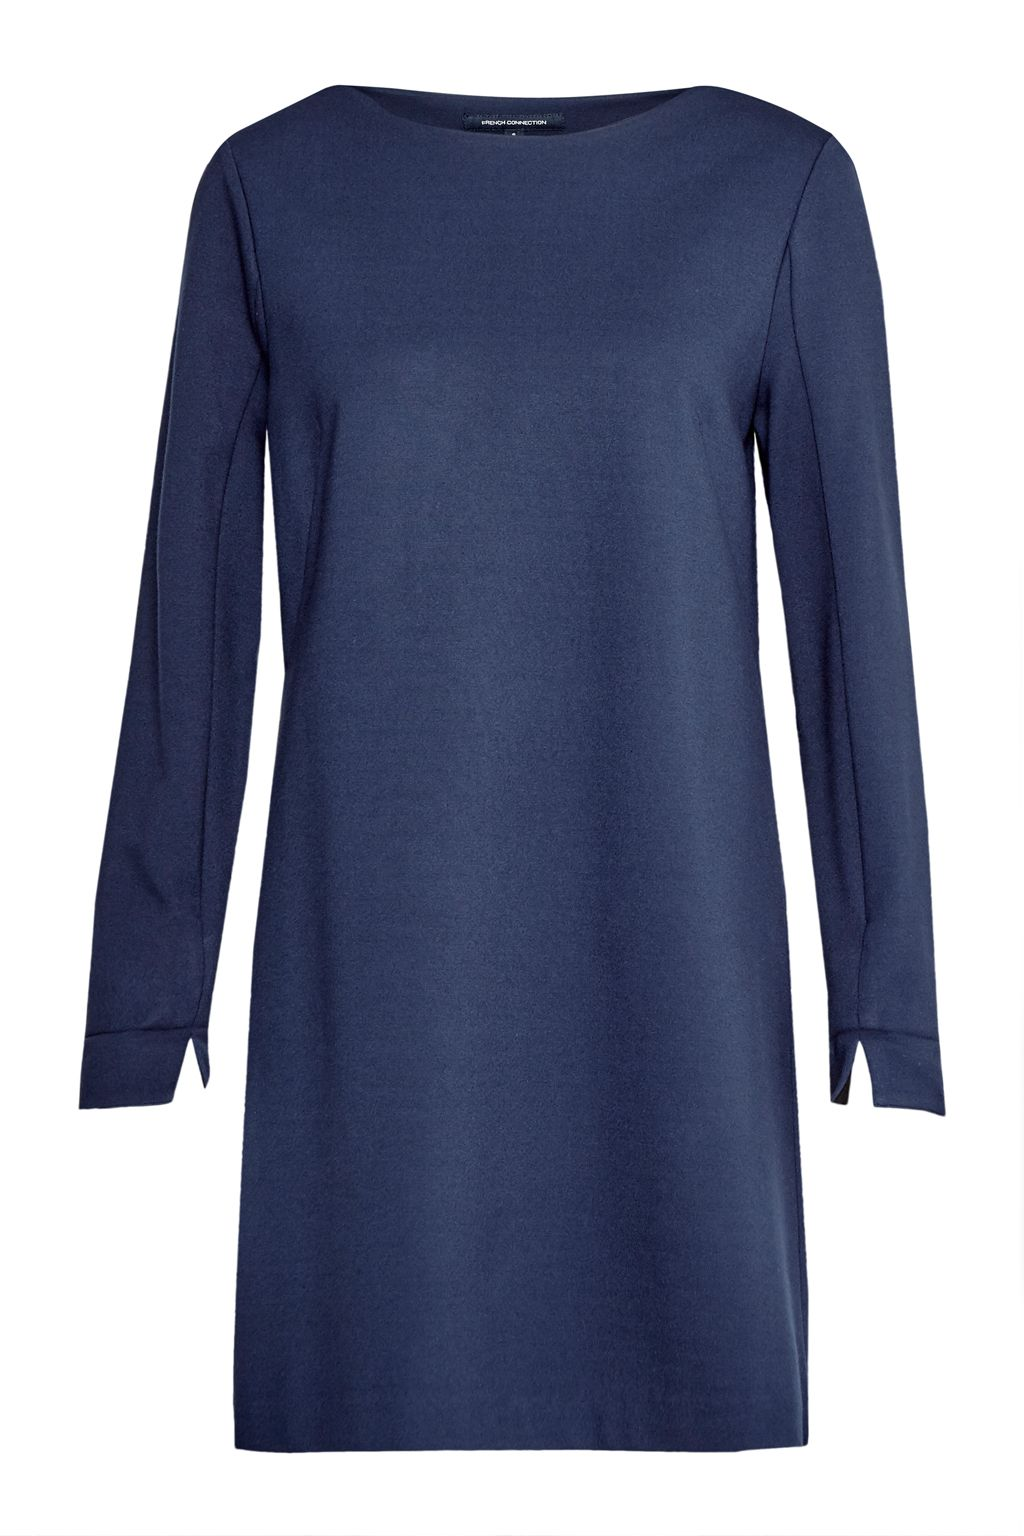 French Connection Lula Tiff Slash Neck Dress, Blue